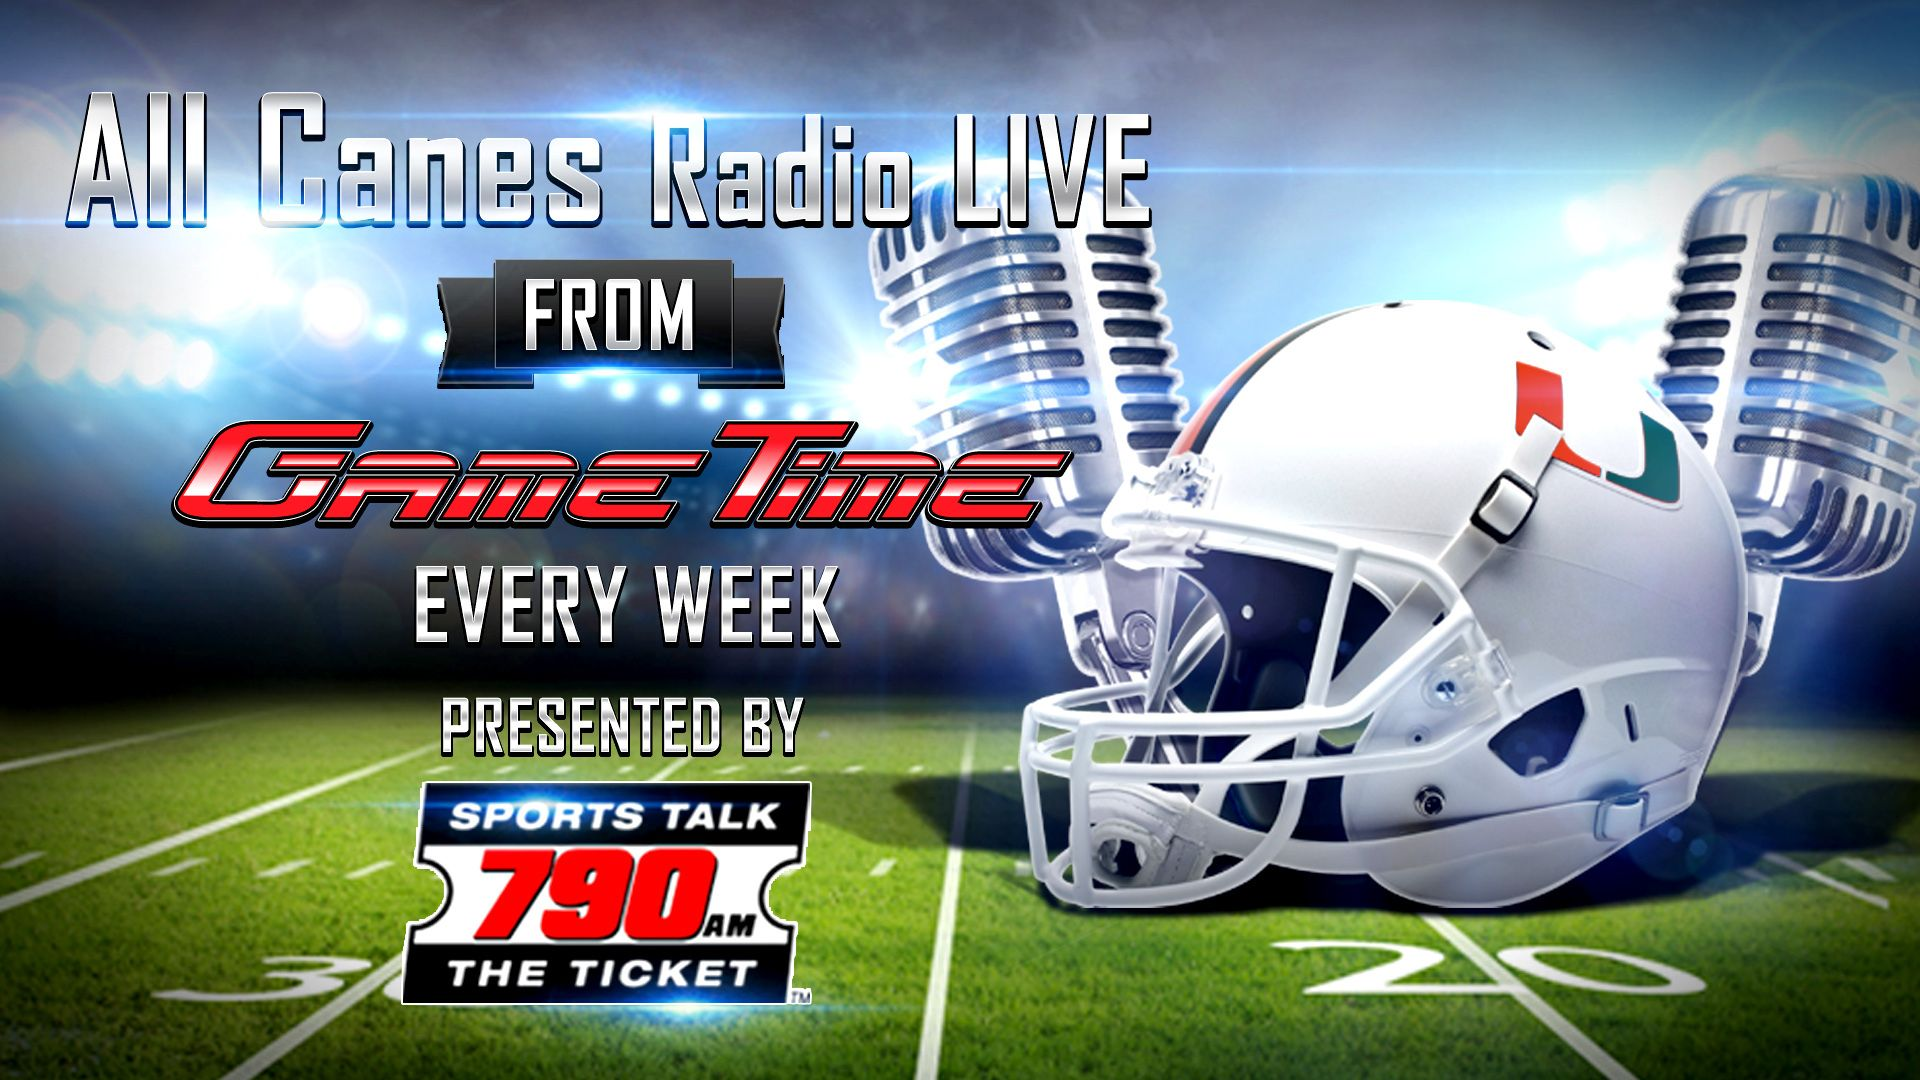 allCanes_Radio_Live_at_GameTime_Miami_every_week